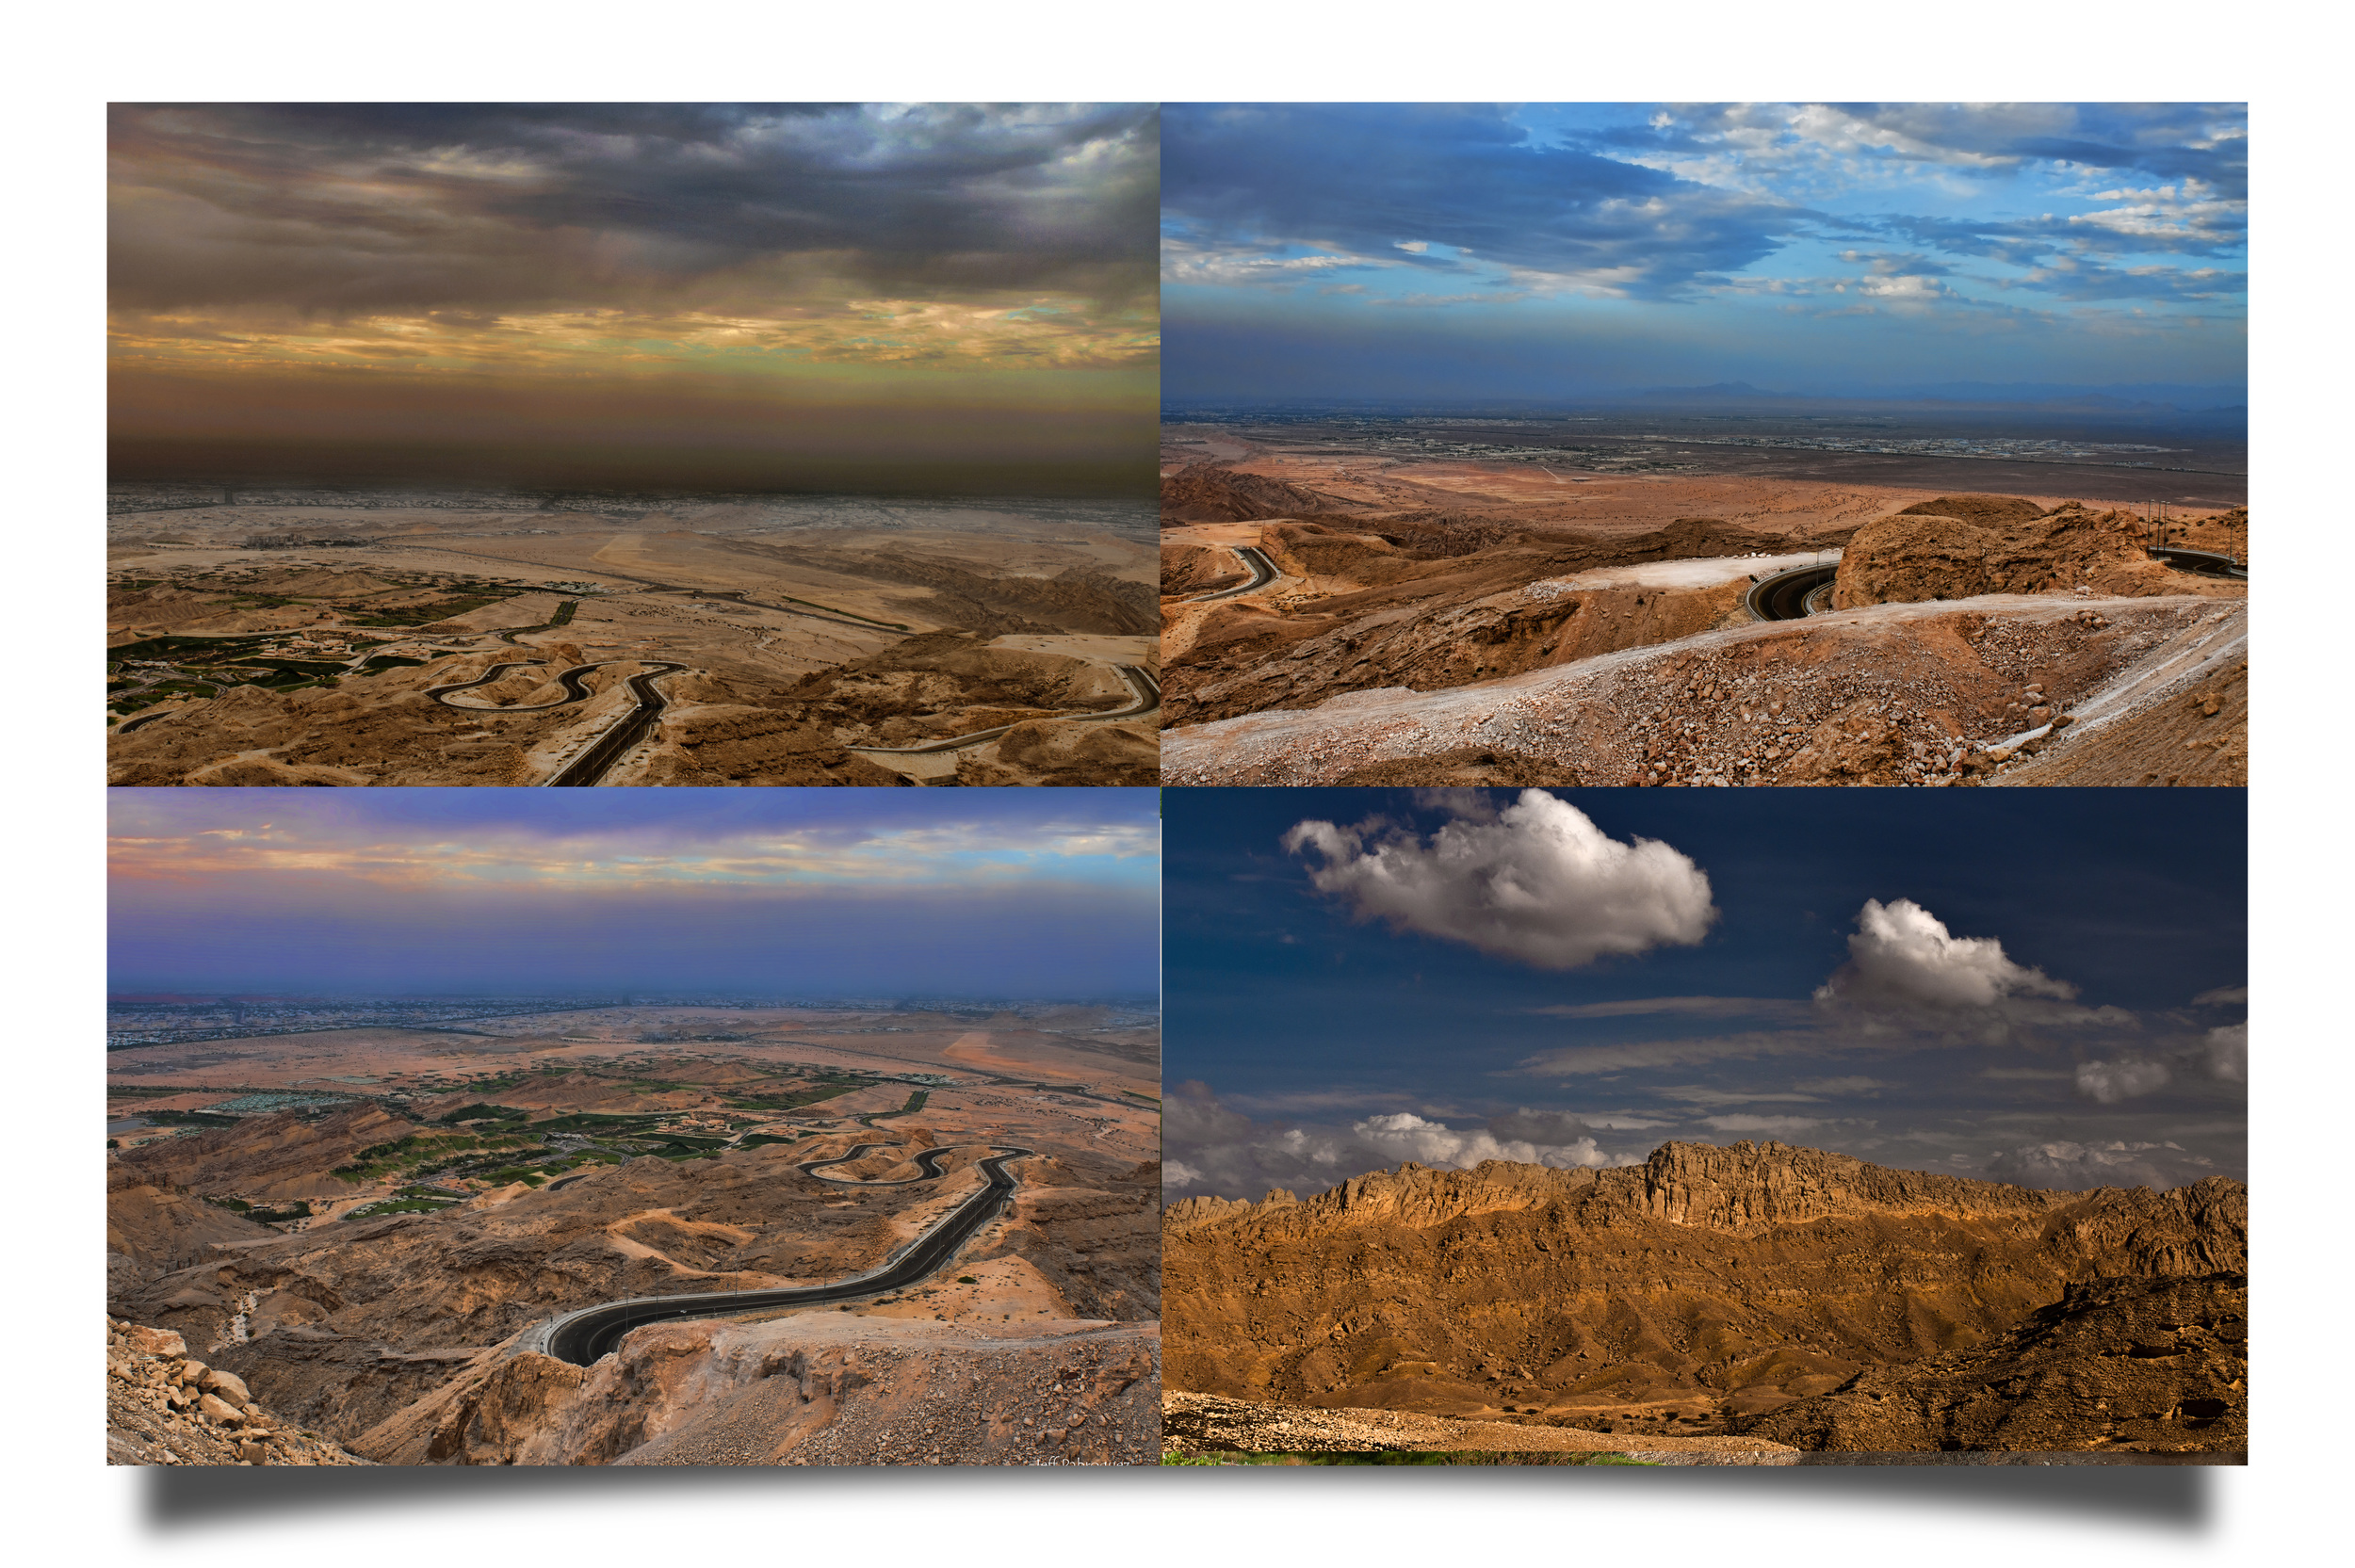 Images taken at the top of Jebel Hafeet